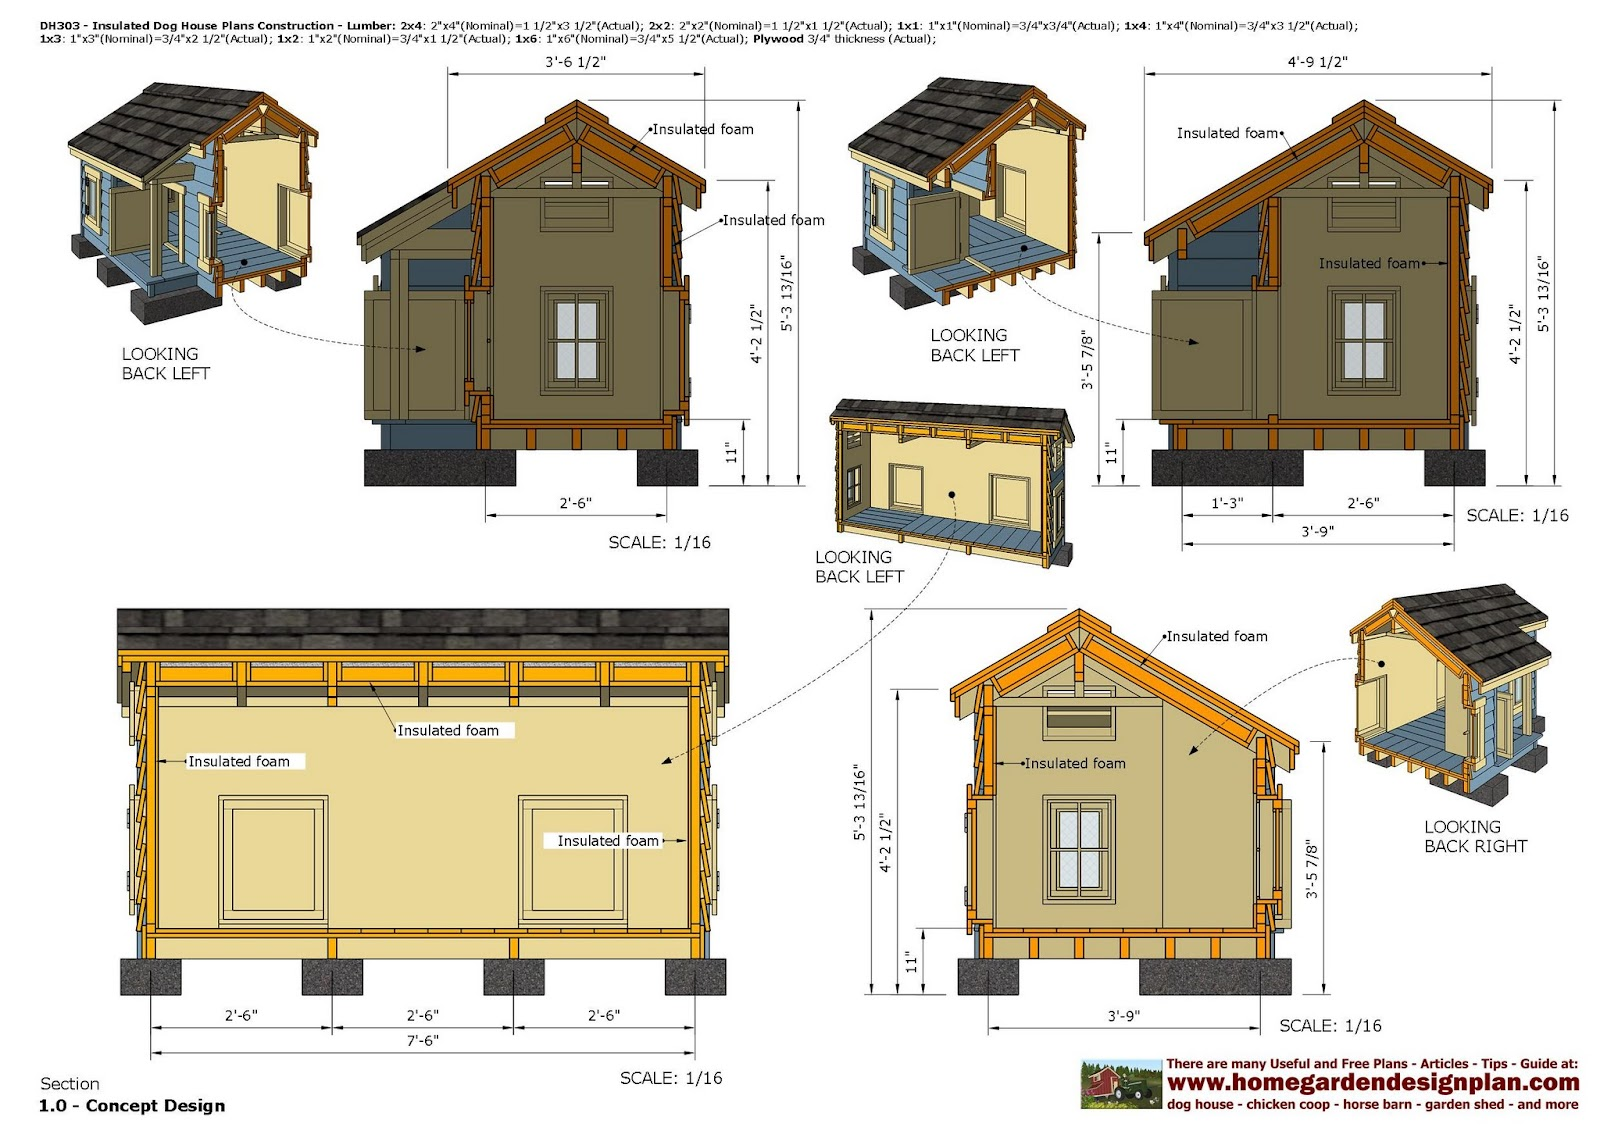 Dog house plans 36 free diy dog house plans ideas for Blueprints of houses to build